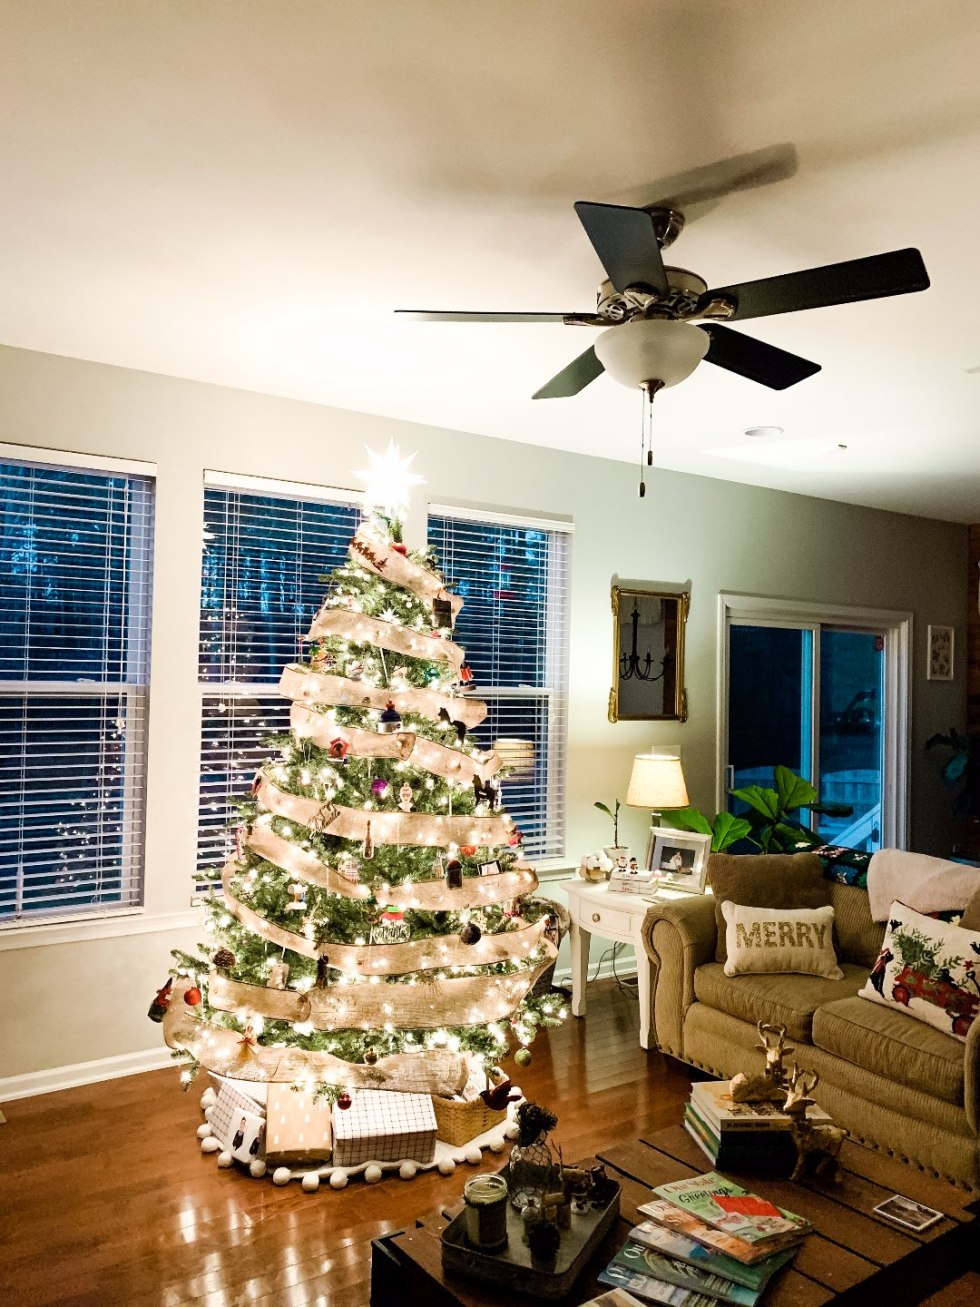 Holiday Home Decor Tour - I'm Fixin' To - @mbg0112 | Holiday Home Decor Tour by popular North Carolina life and style blog, I'm Fixin' To: image of a living room decorated with stockings and a Balsam Hill Christmas Tree.